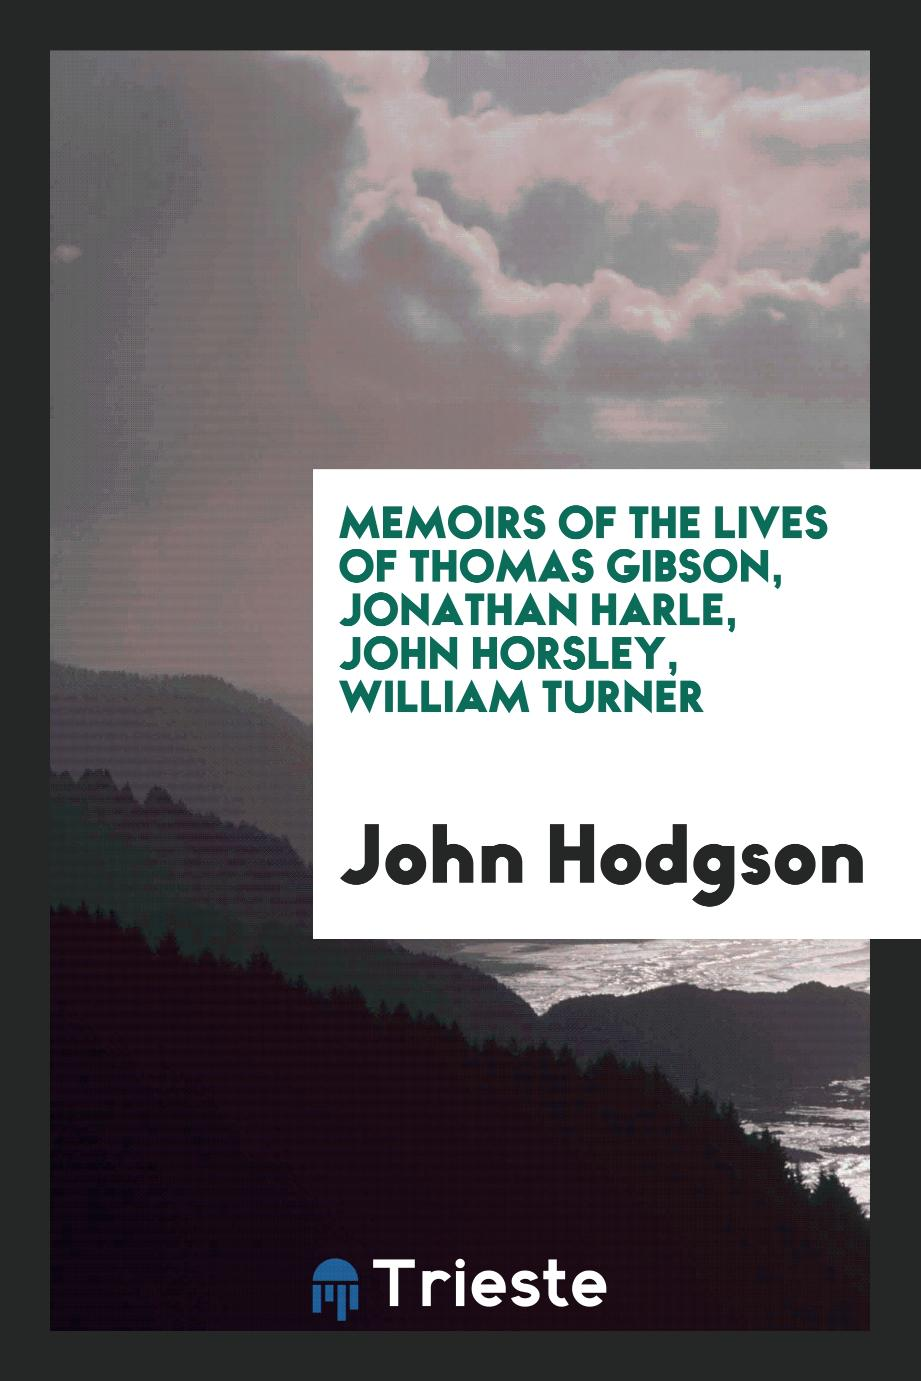 Memoirs of the Lives of Thomas Gibson, Jonathan Harle, John Horsley, William Turner